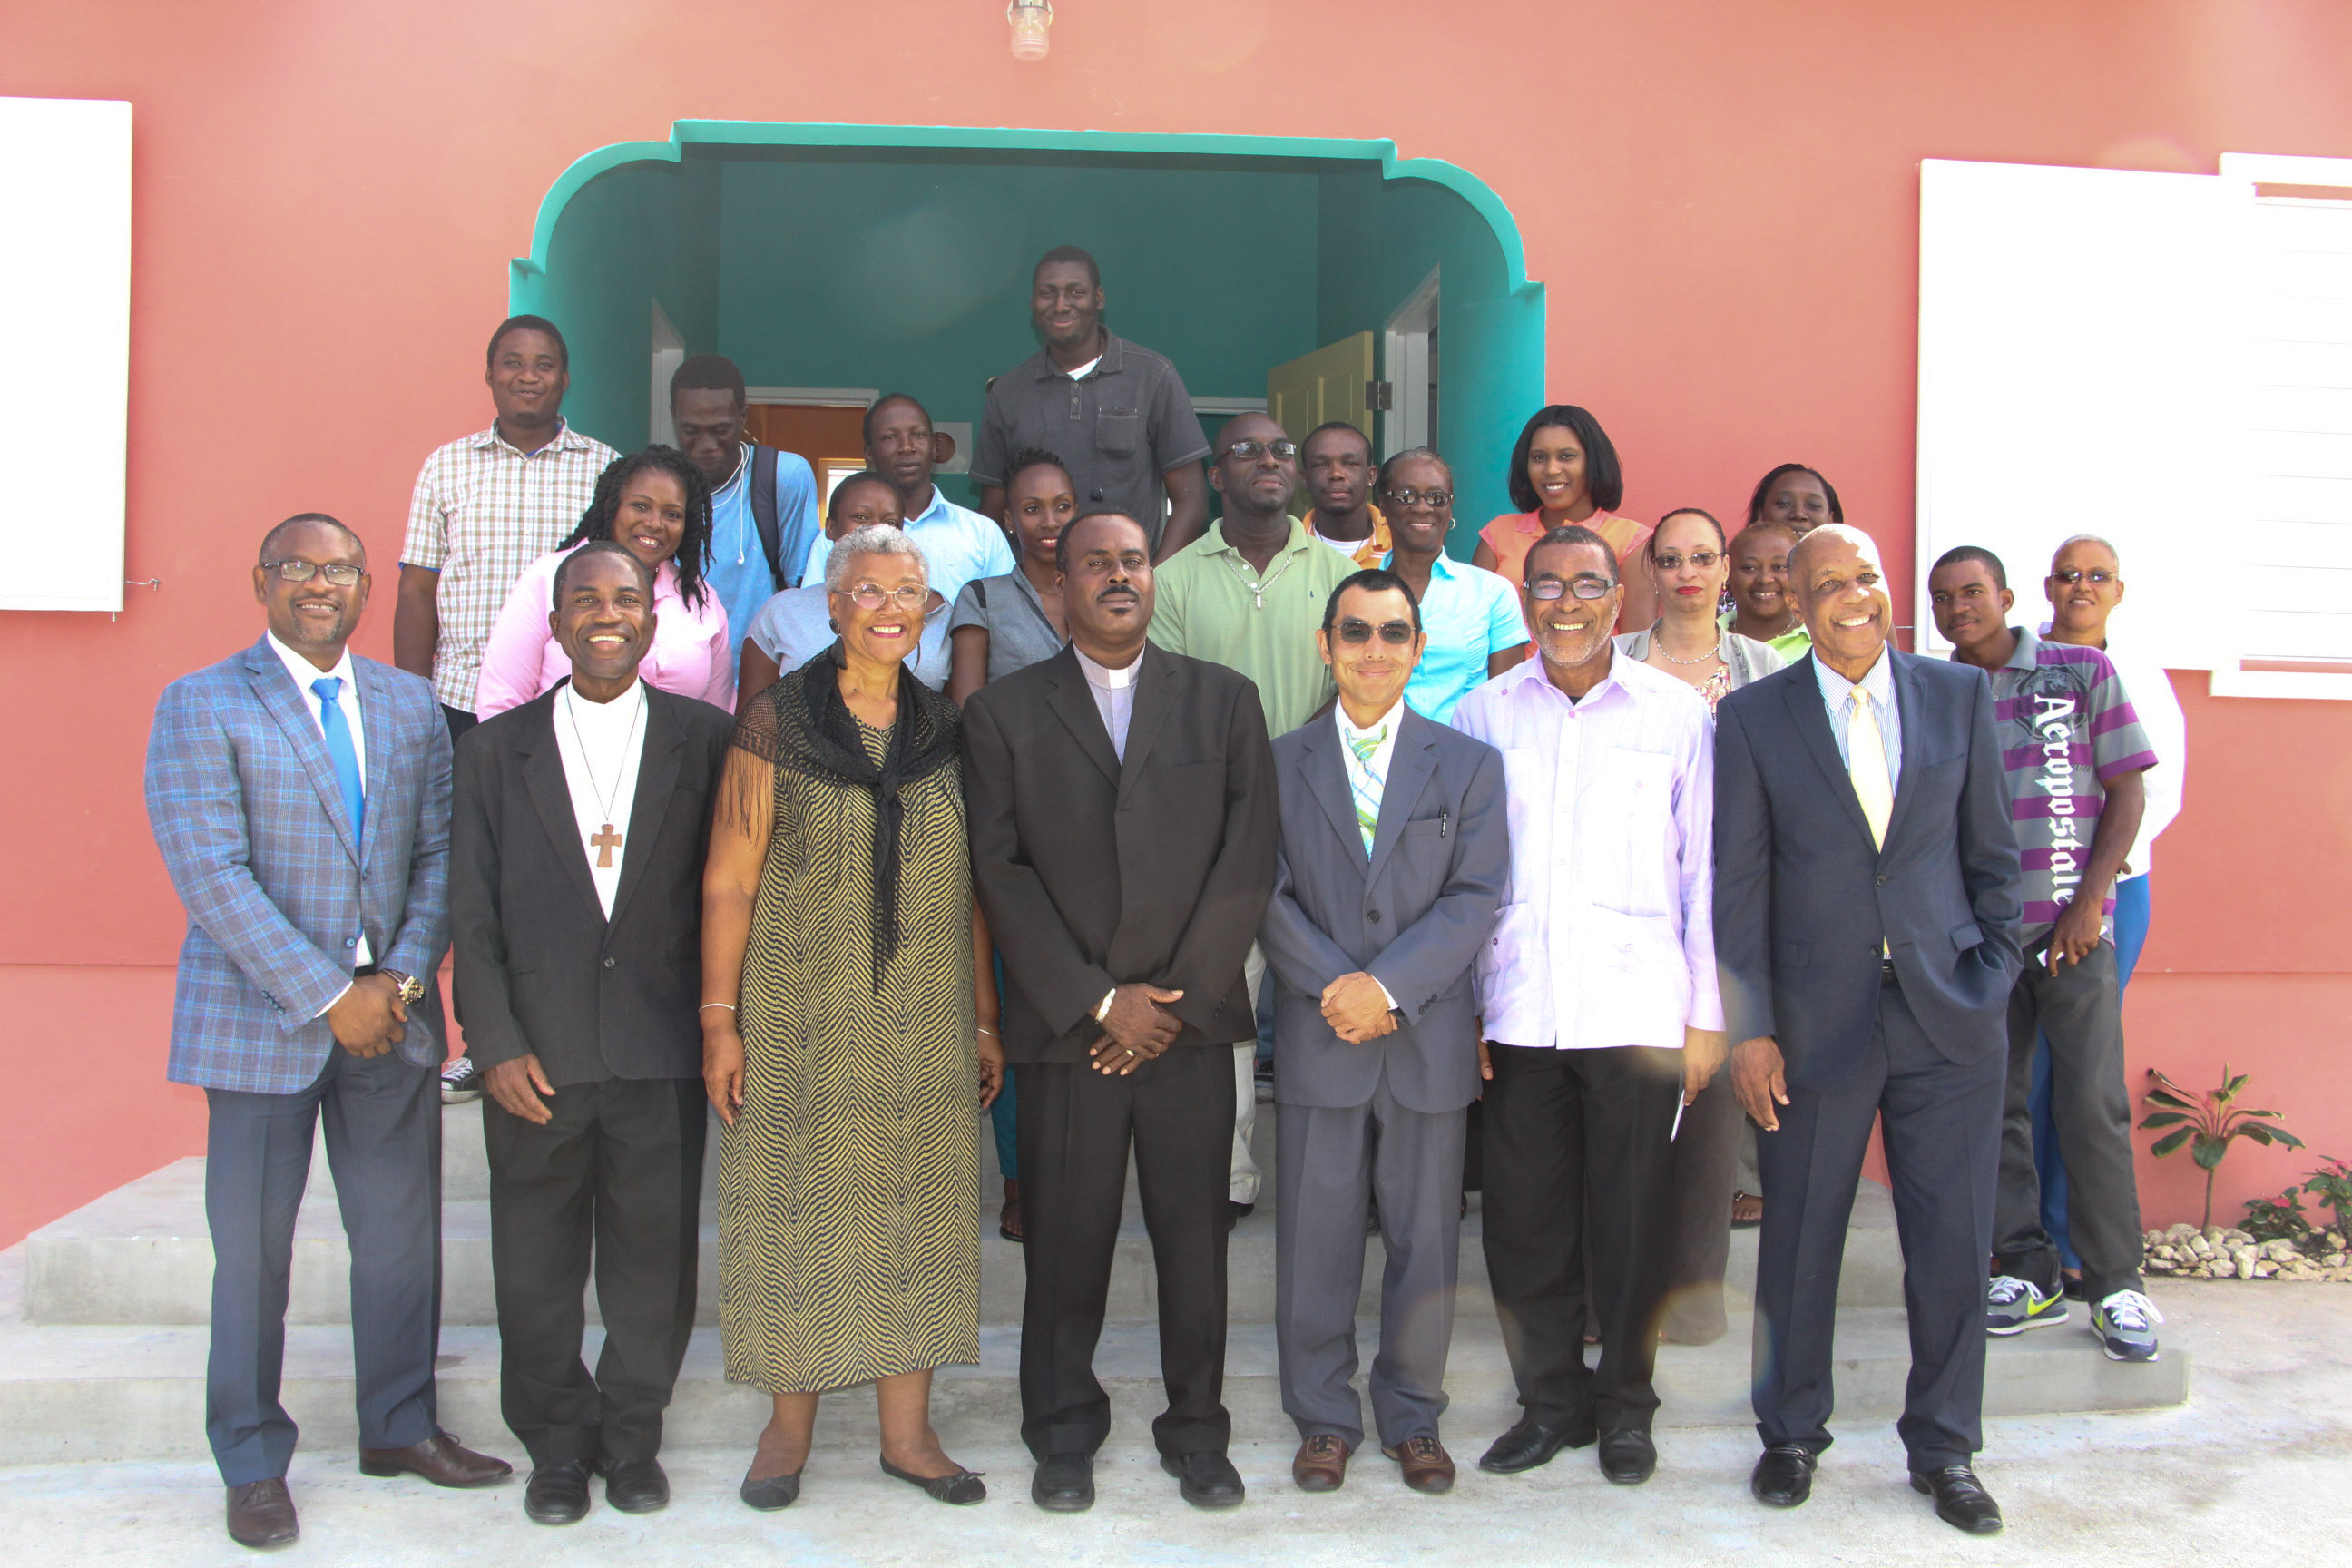 Group photo with staff, participants and invited guests